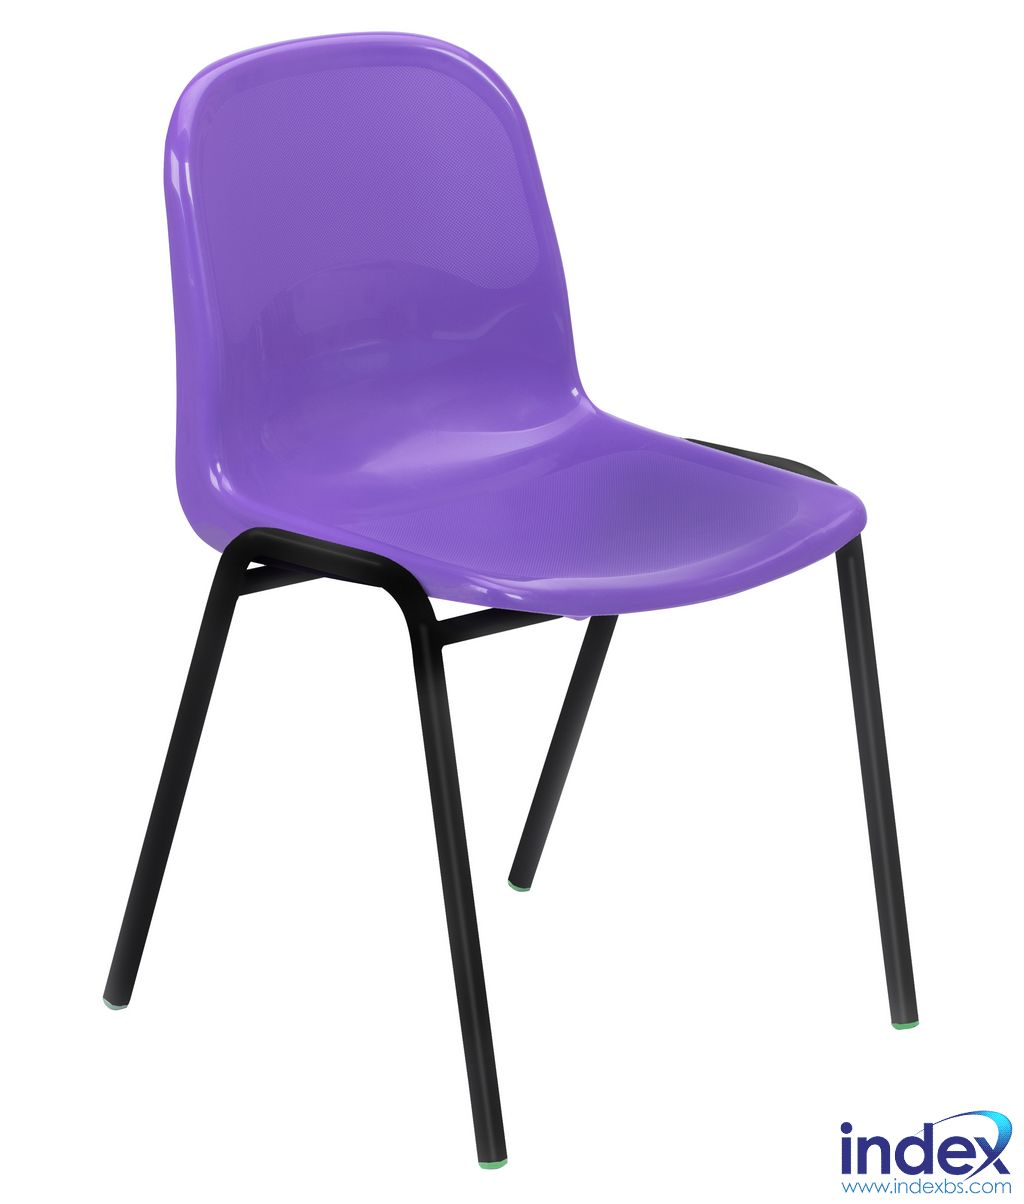 Proform Harmony Chair Range